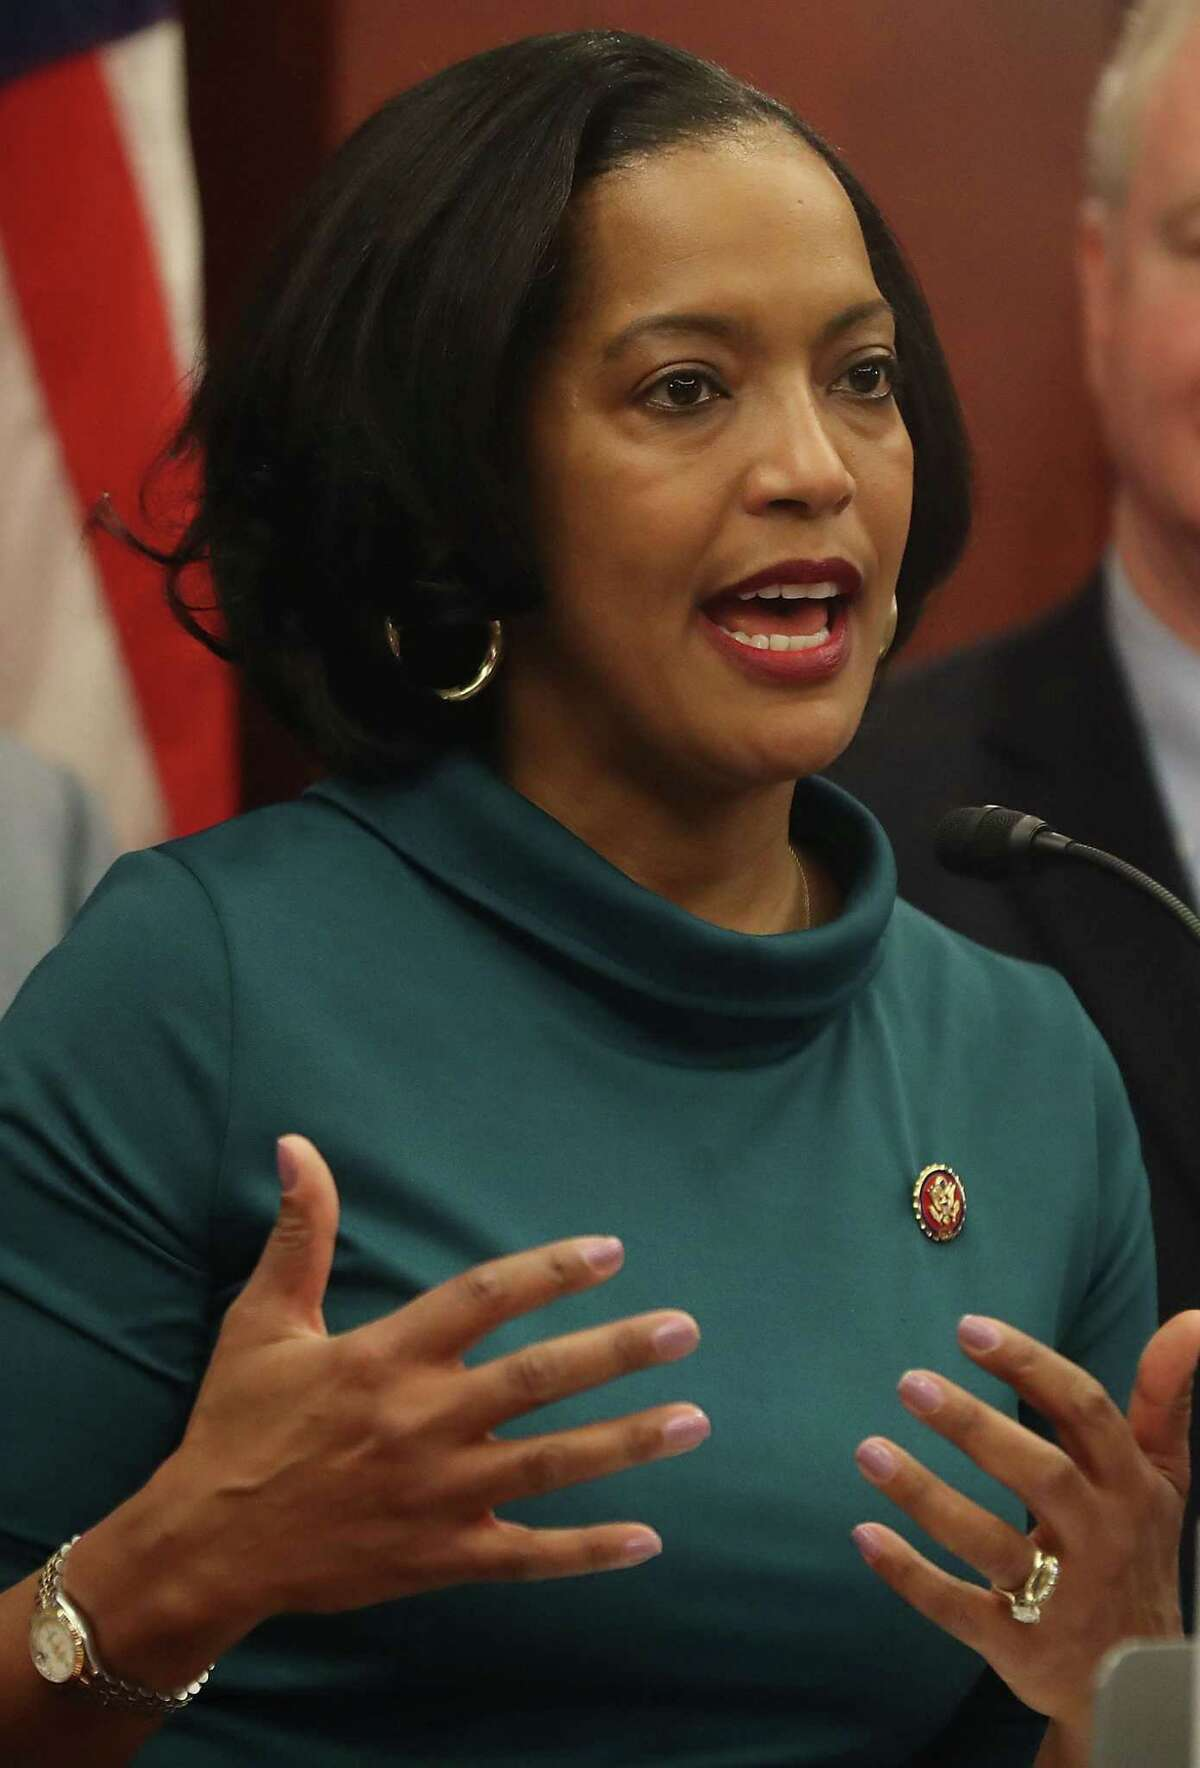 WASHINGTON, DC - JANUARY 30: Rep. Jahana Hayes (D-CT) speaks during an event to introduce legislation called the Social Security 2100 Act. which would increase increase benefits and strengthen the fund, during a news conference on Capitol Hill January 30, 2019 in Washington, DC. (Photo by Mark Wilson/Getty Images)